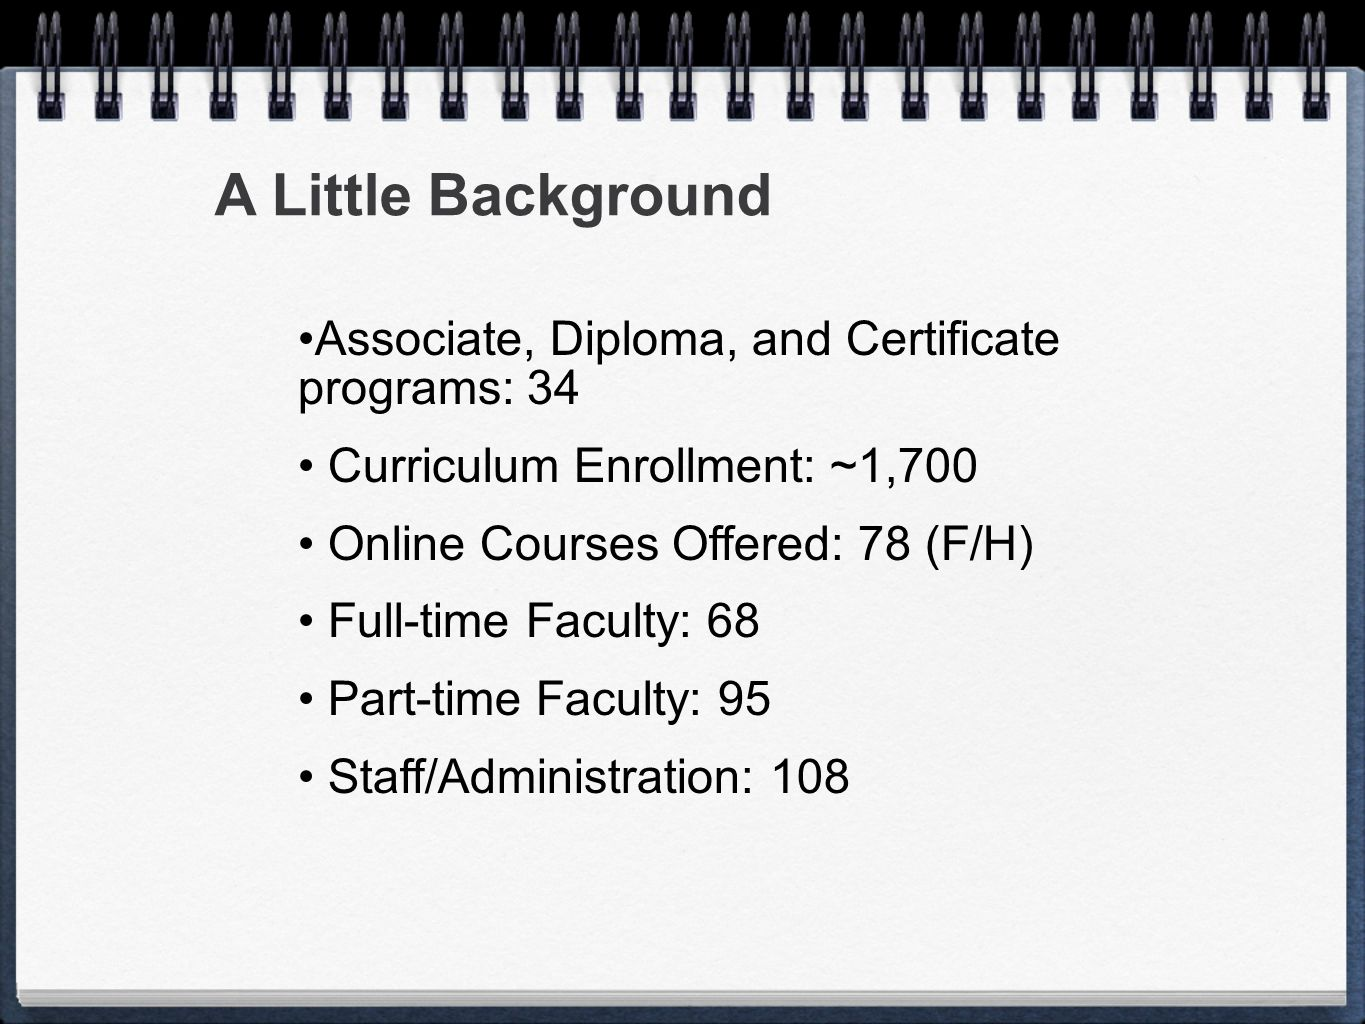 Associate, Diploma, and Certificate programs: 34 Curriculum Enrollment: ~1,700 Online Courses Offered: 78 (F/H) Full-time Faculty: 68 Part-time Facult